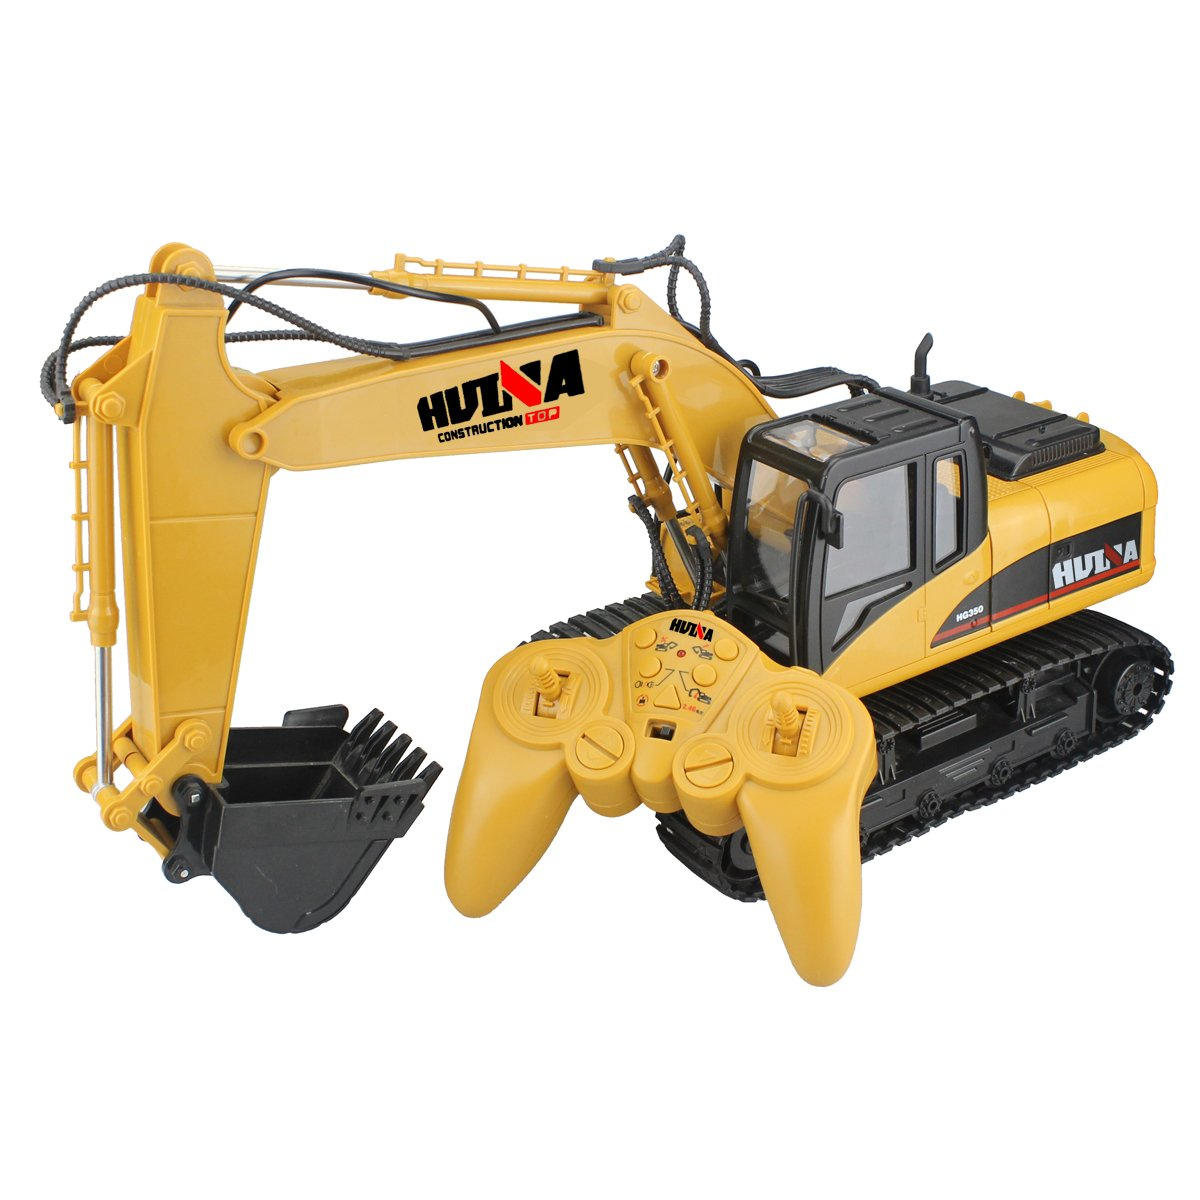 RC Truck Remote Control Excavator Crawler Tractor 15 Channel 2.4G Construction Vehicle Digger Electronics Hobby Toys with Simulation Sound and Flashing Lights by fisca (Image #9)